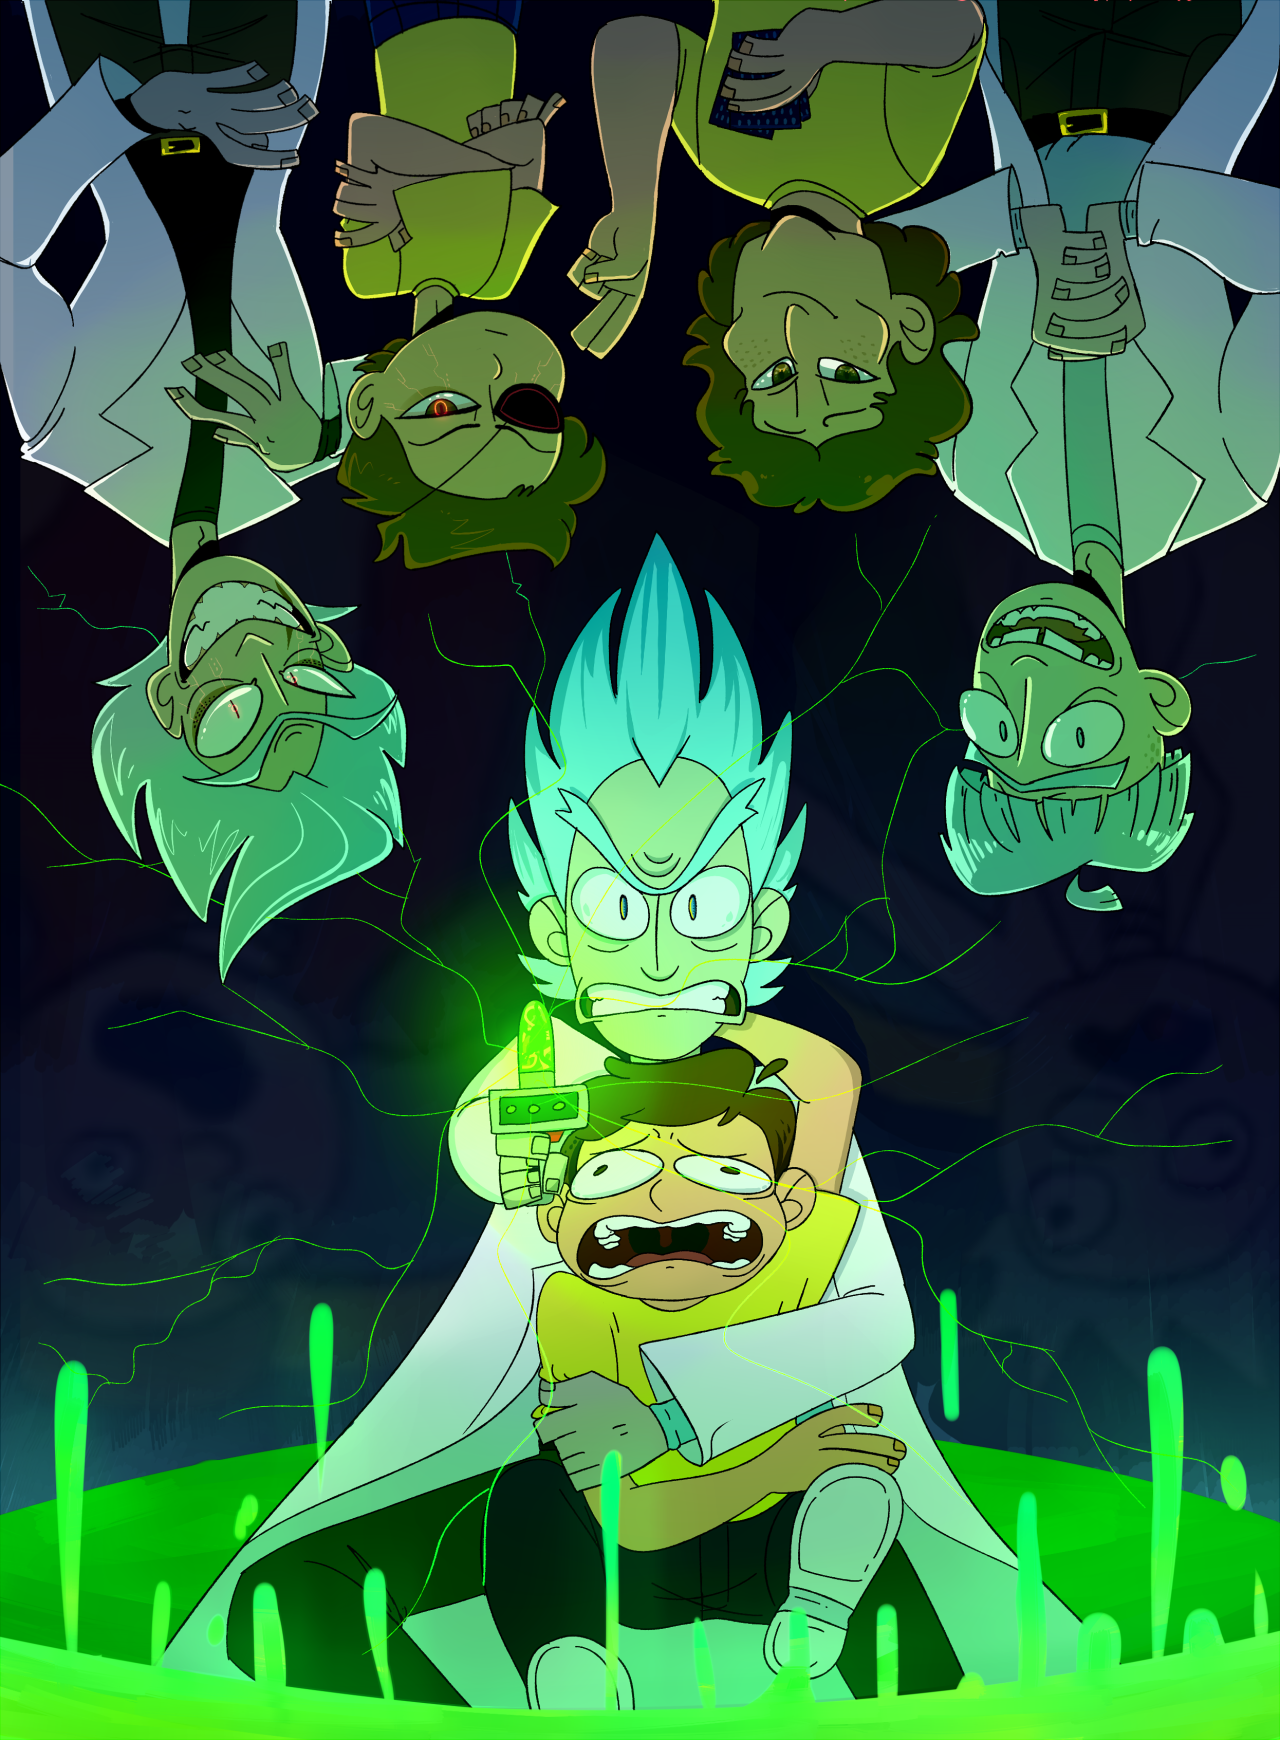 Best Rick And Morty Quotes Sugar And Memories The Best Rick N Morty's  Rick And Morty